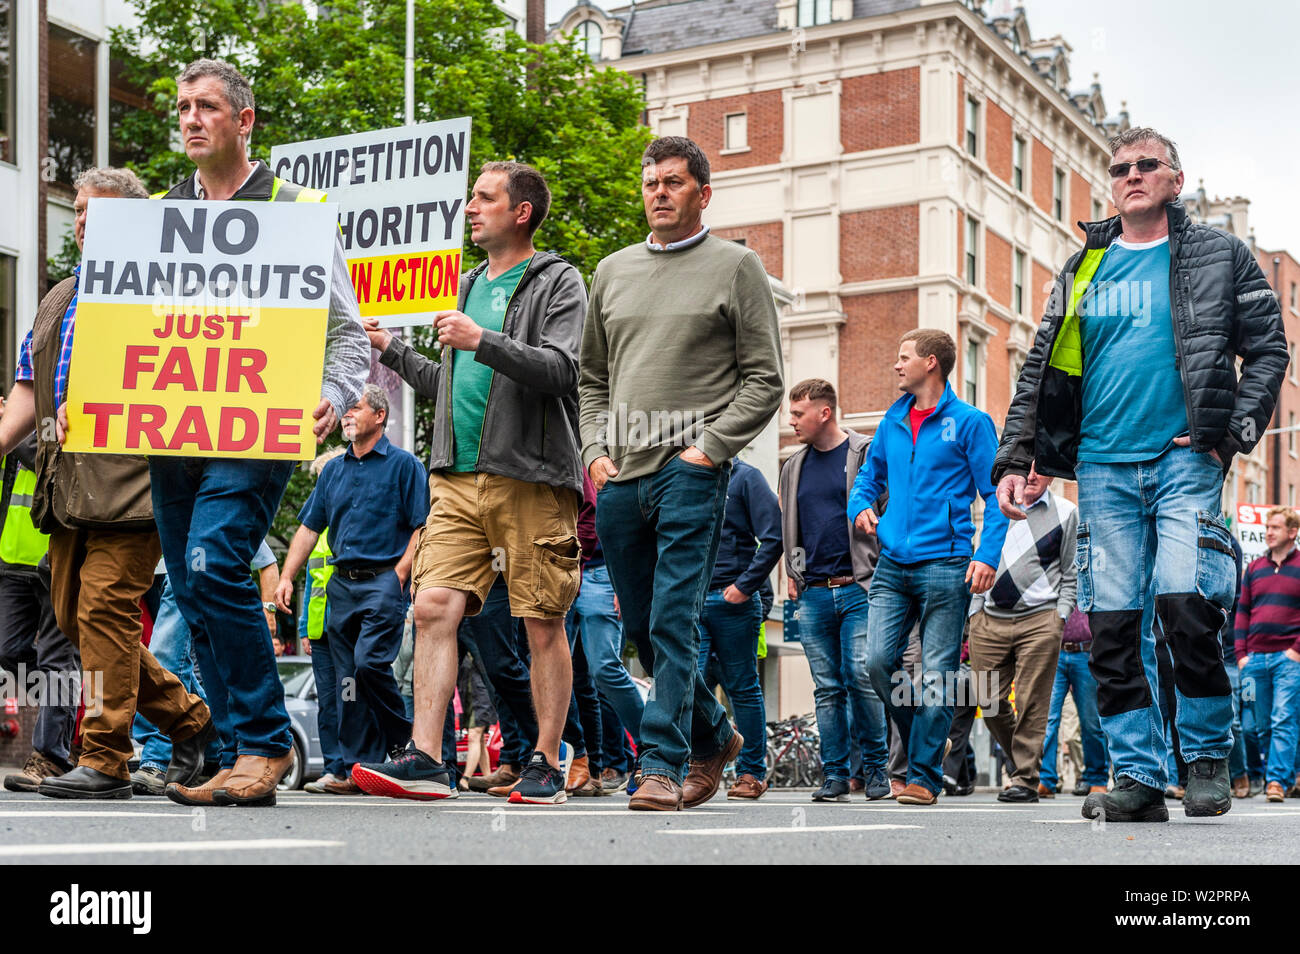 dublin-ireland-10th-july-2019-thousands-of-farmers-descended-on-leinster-house-today-in-protest-at-the-mercosur-deal-which-farmers-claim-will-be-the-final-nail-in-the-coffin-for-their-way-of-life-credit-andy-gibsonalamy-live-news-W2PRPA.jpg